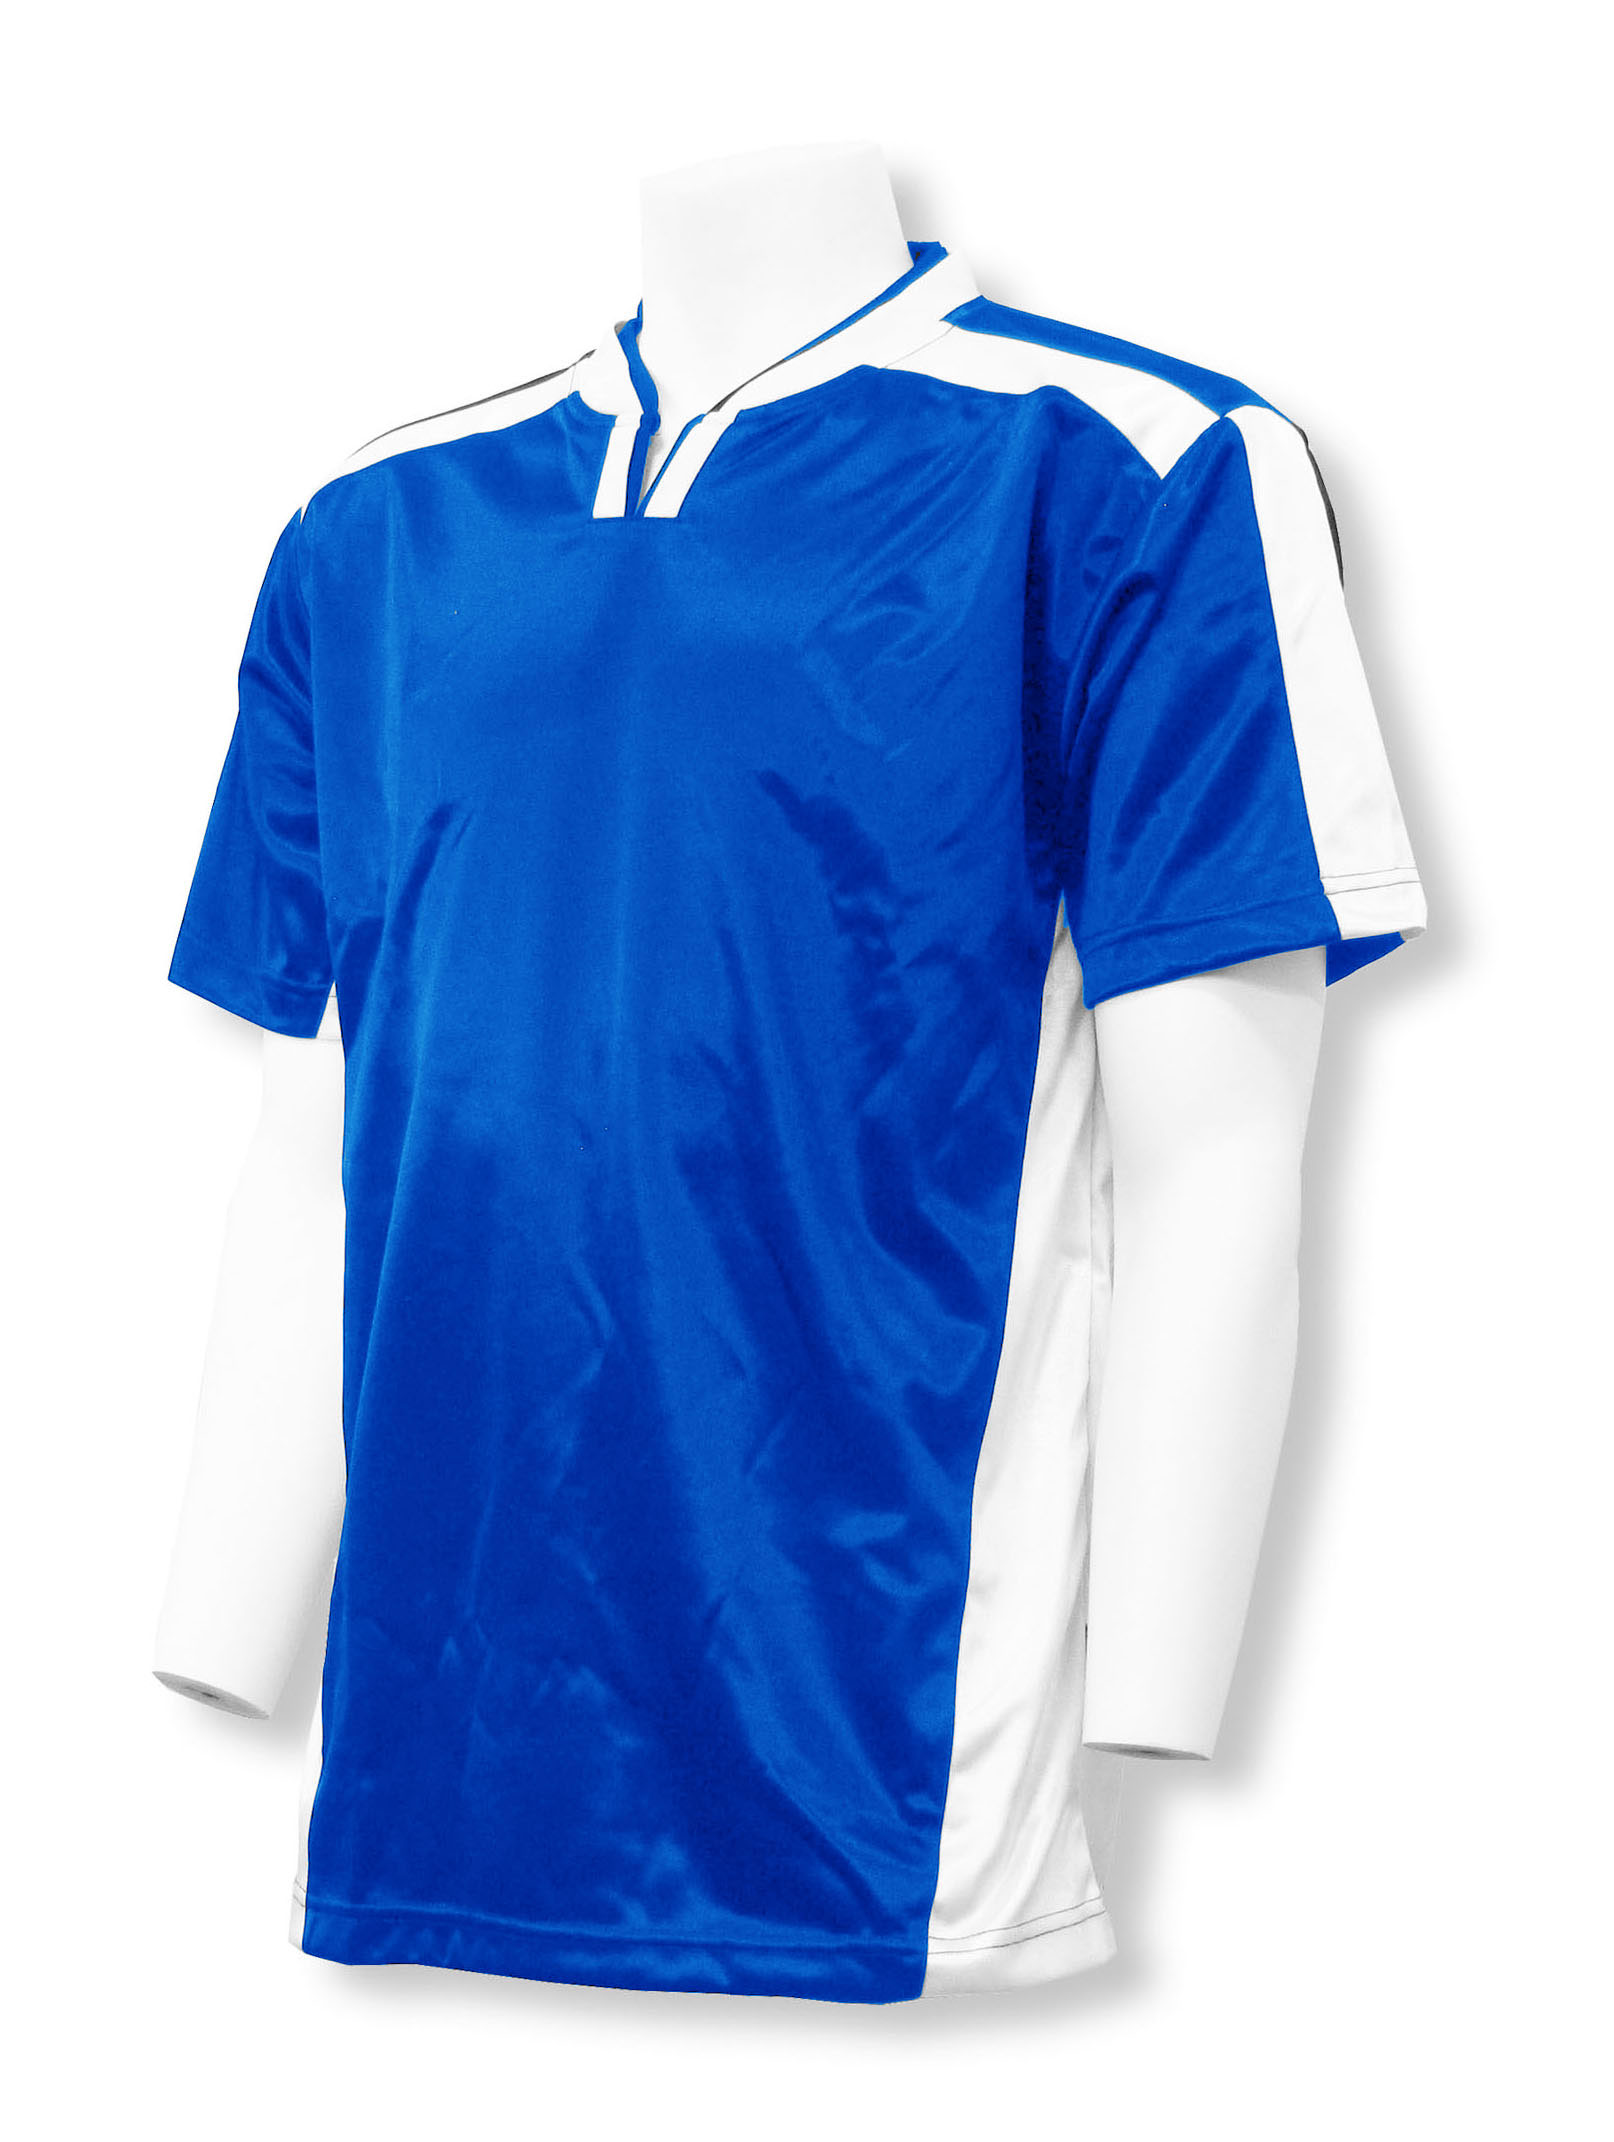 Winchester soccer jersey in royal/white by Code Four Athletics